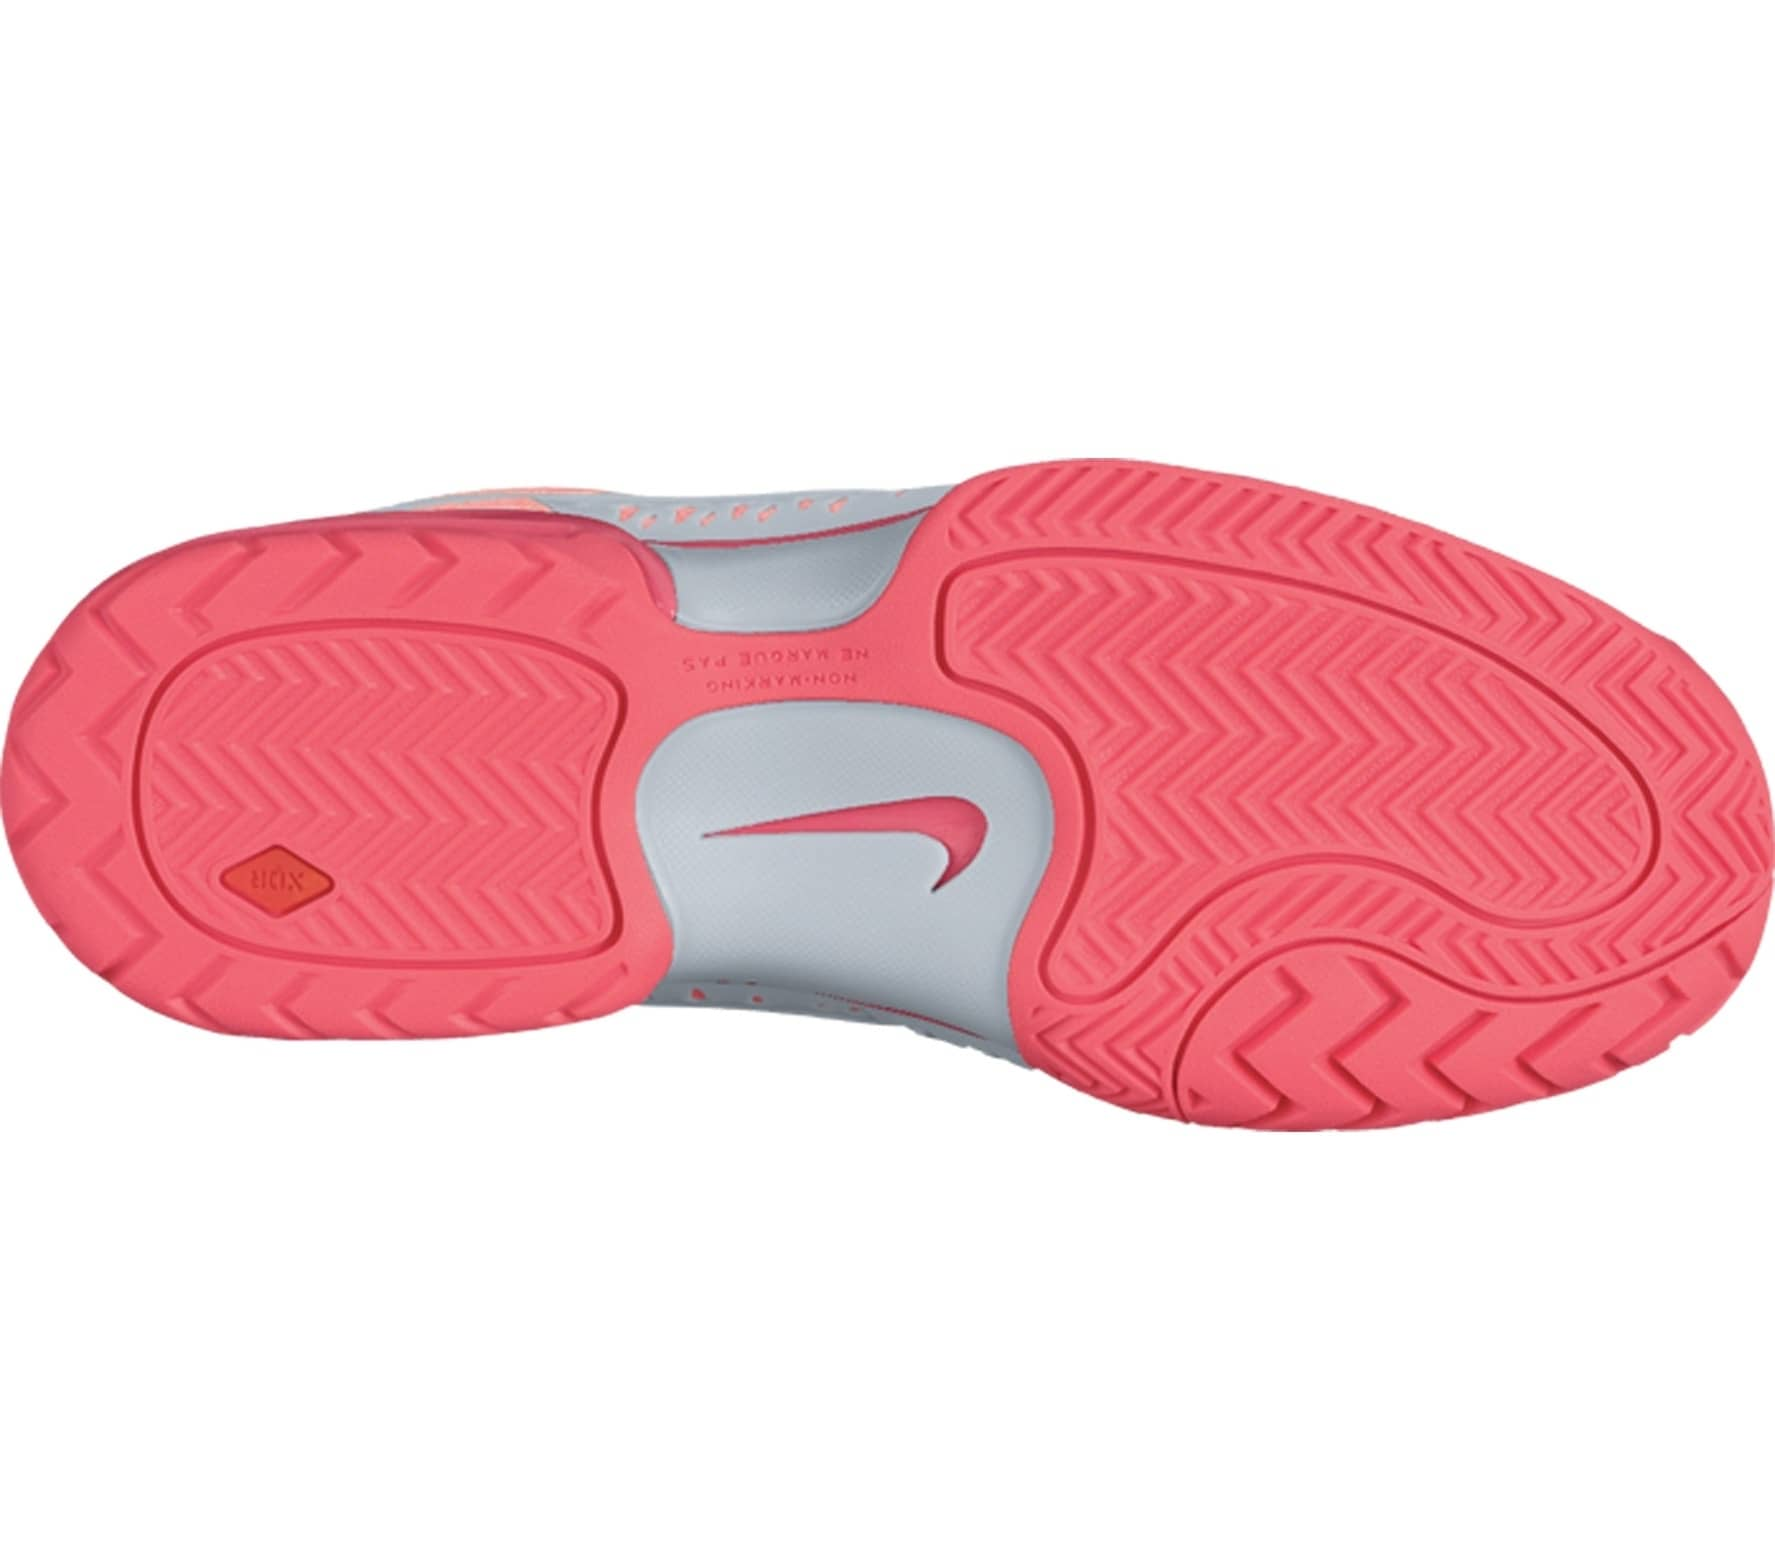 new style 48a36 26570 ... discount code for nike tennis shoes womens air max cage fa13 751b6 cf719